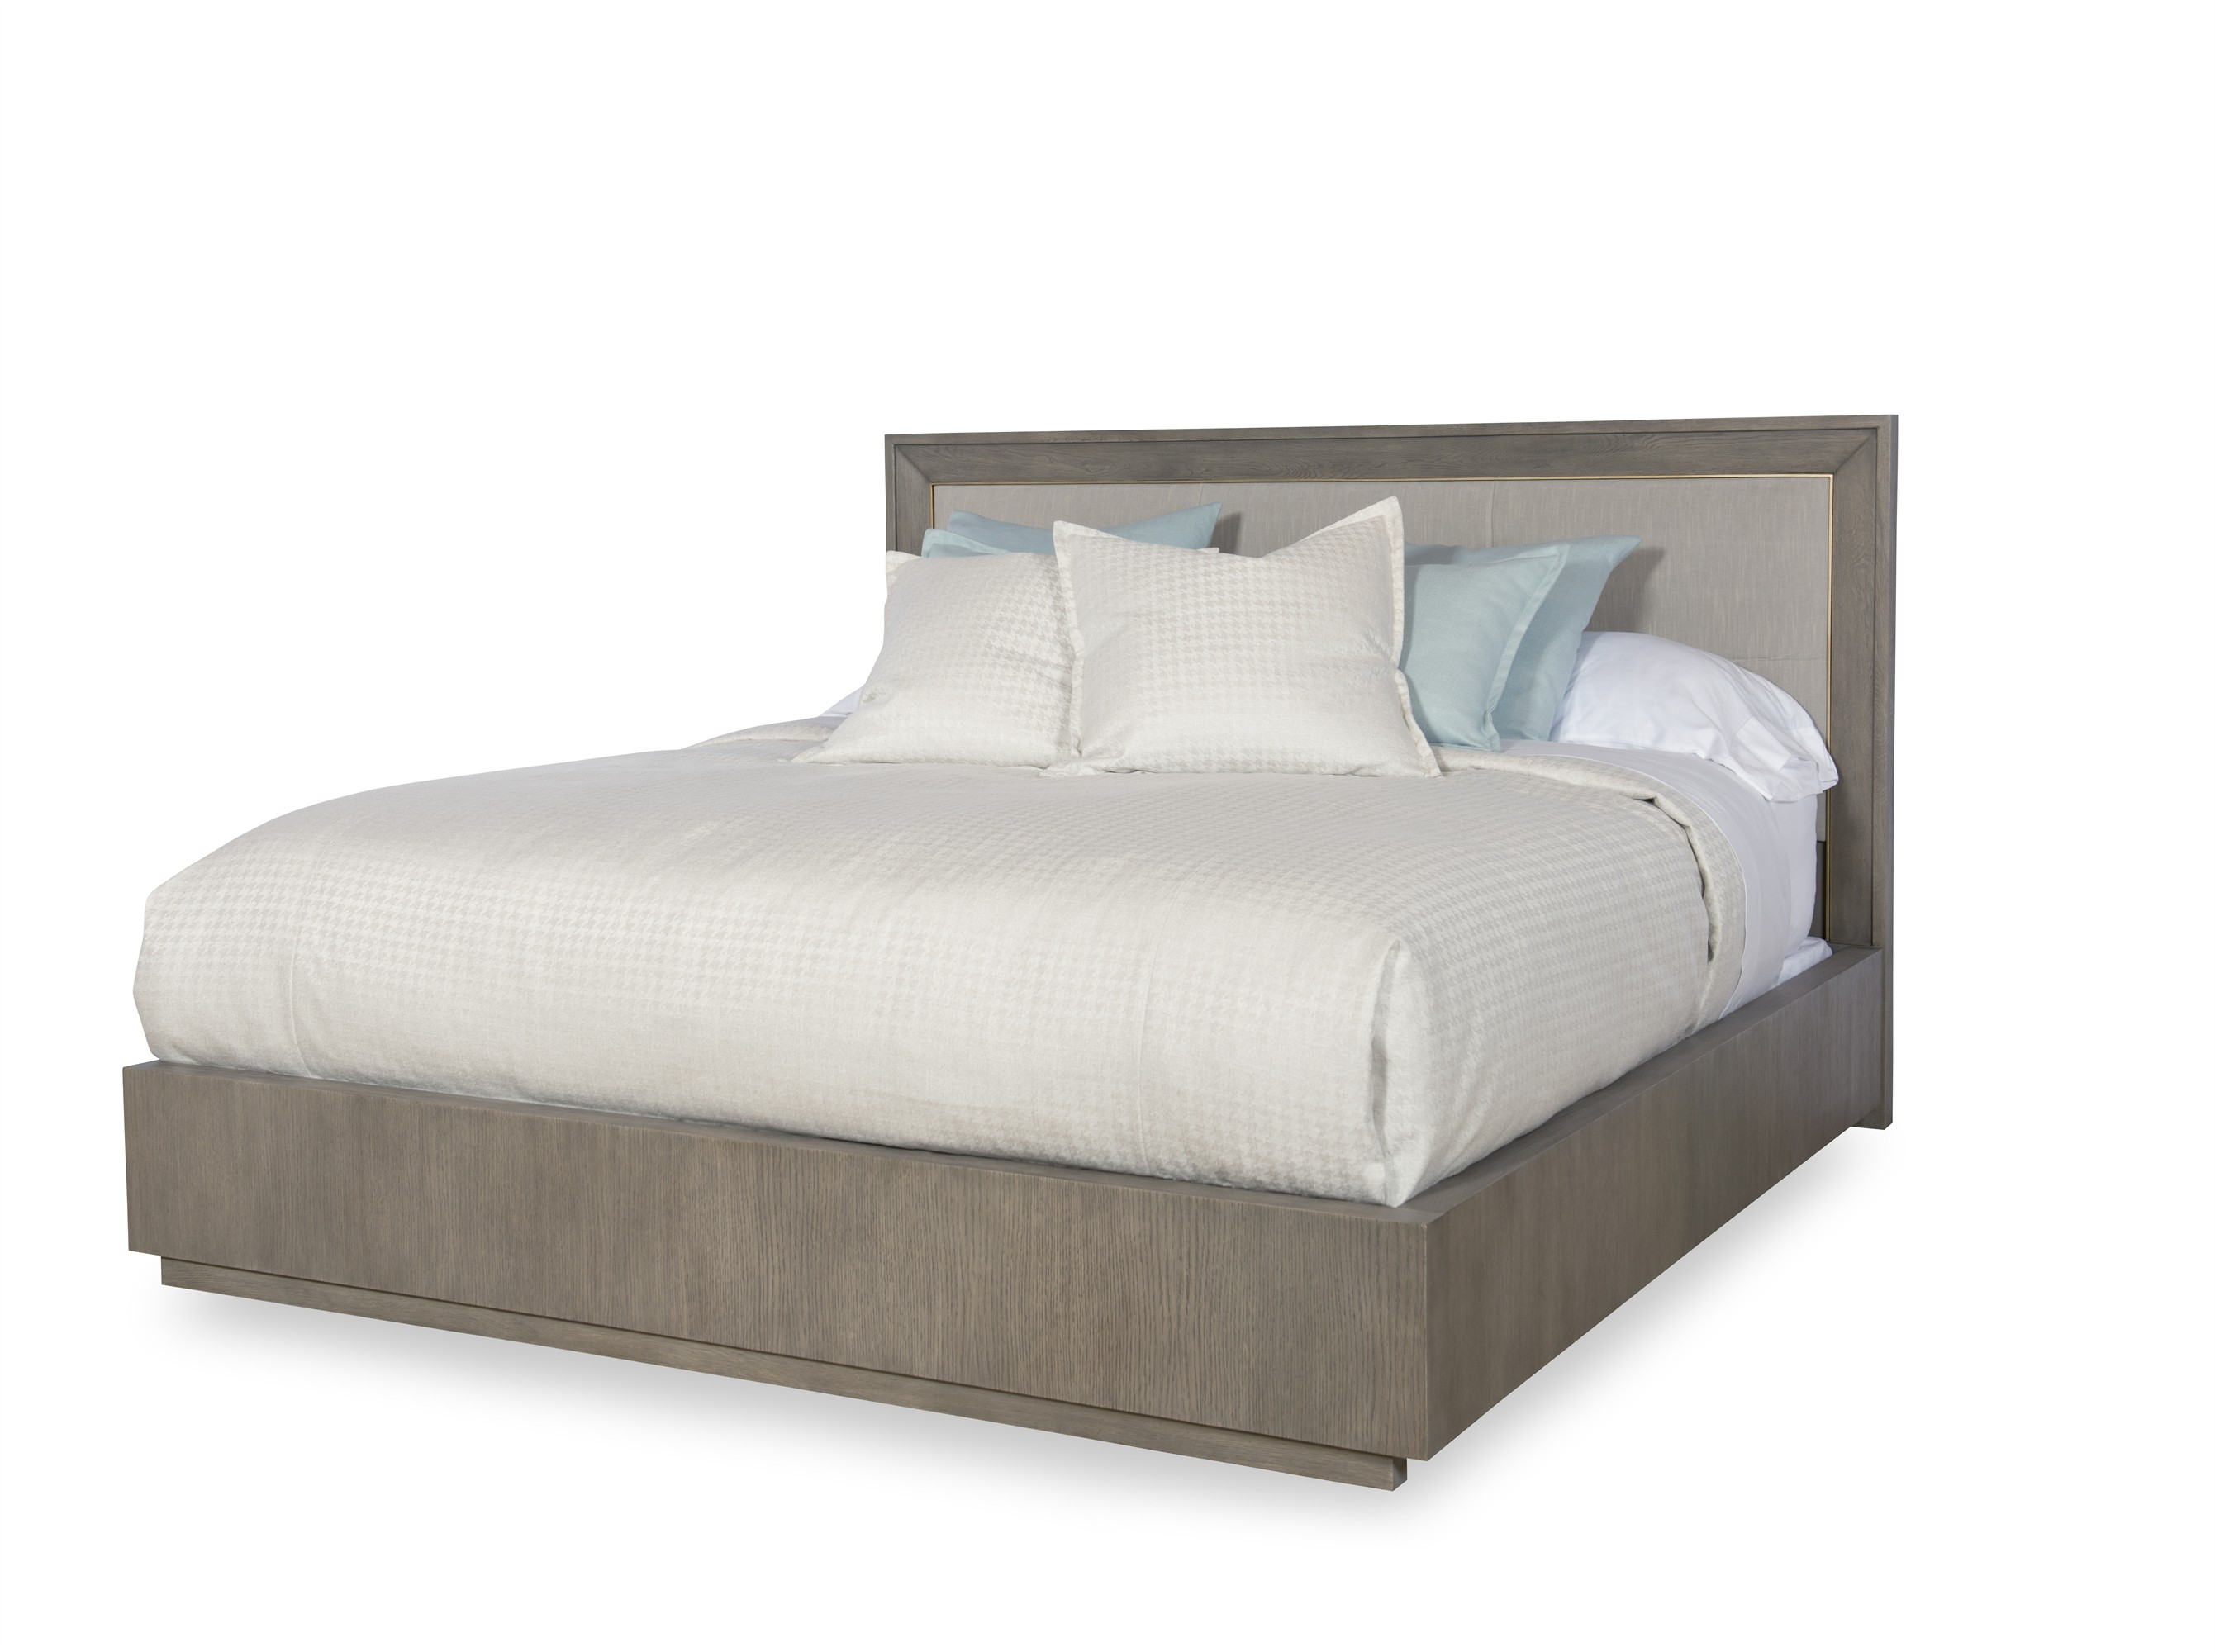 Kendall Bed - Queen Size 5/0